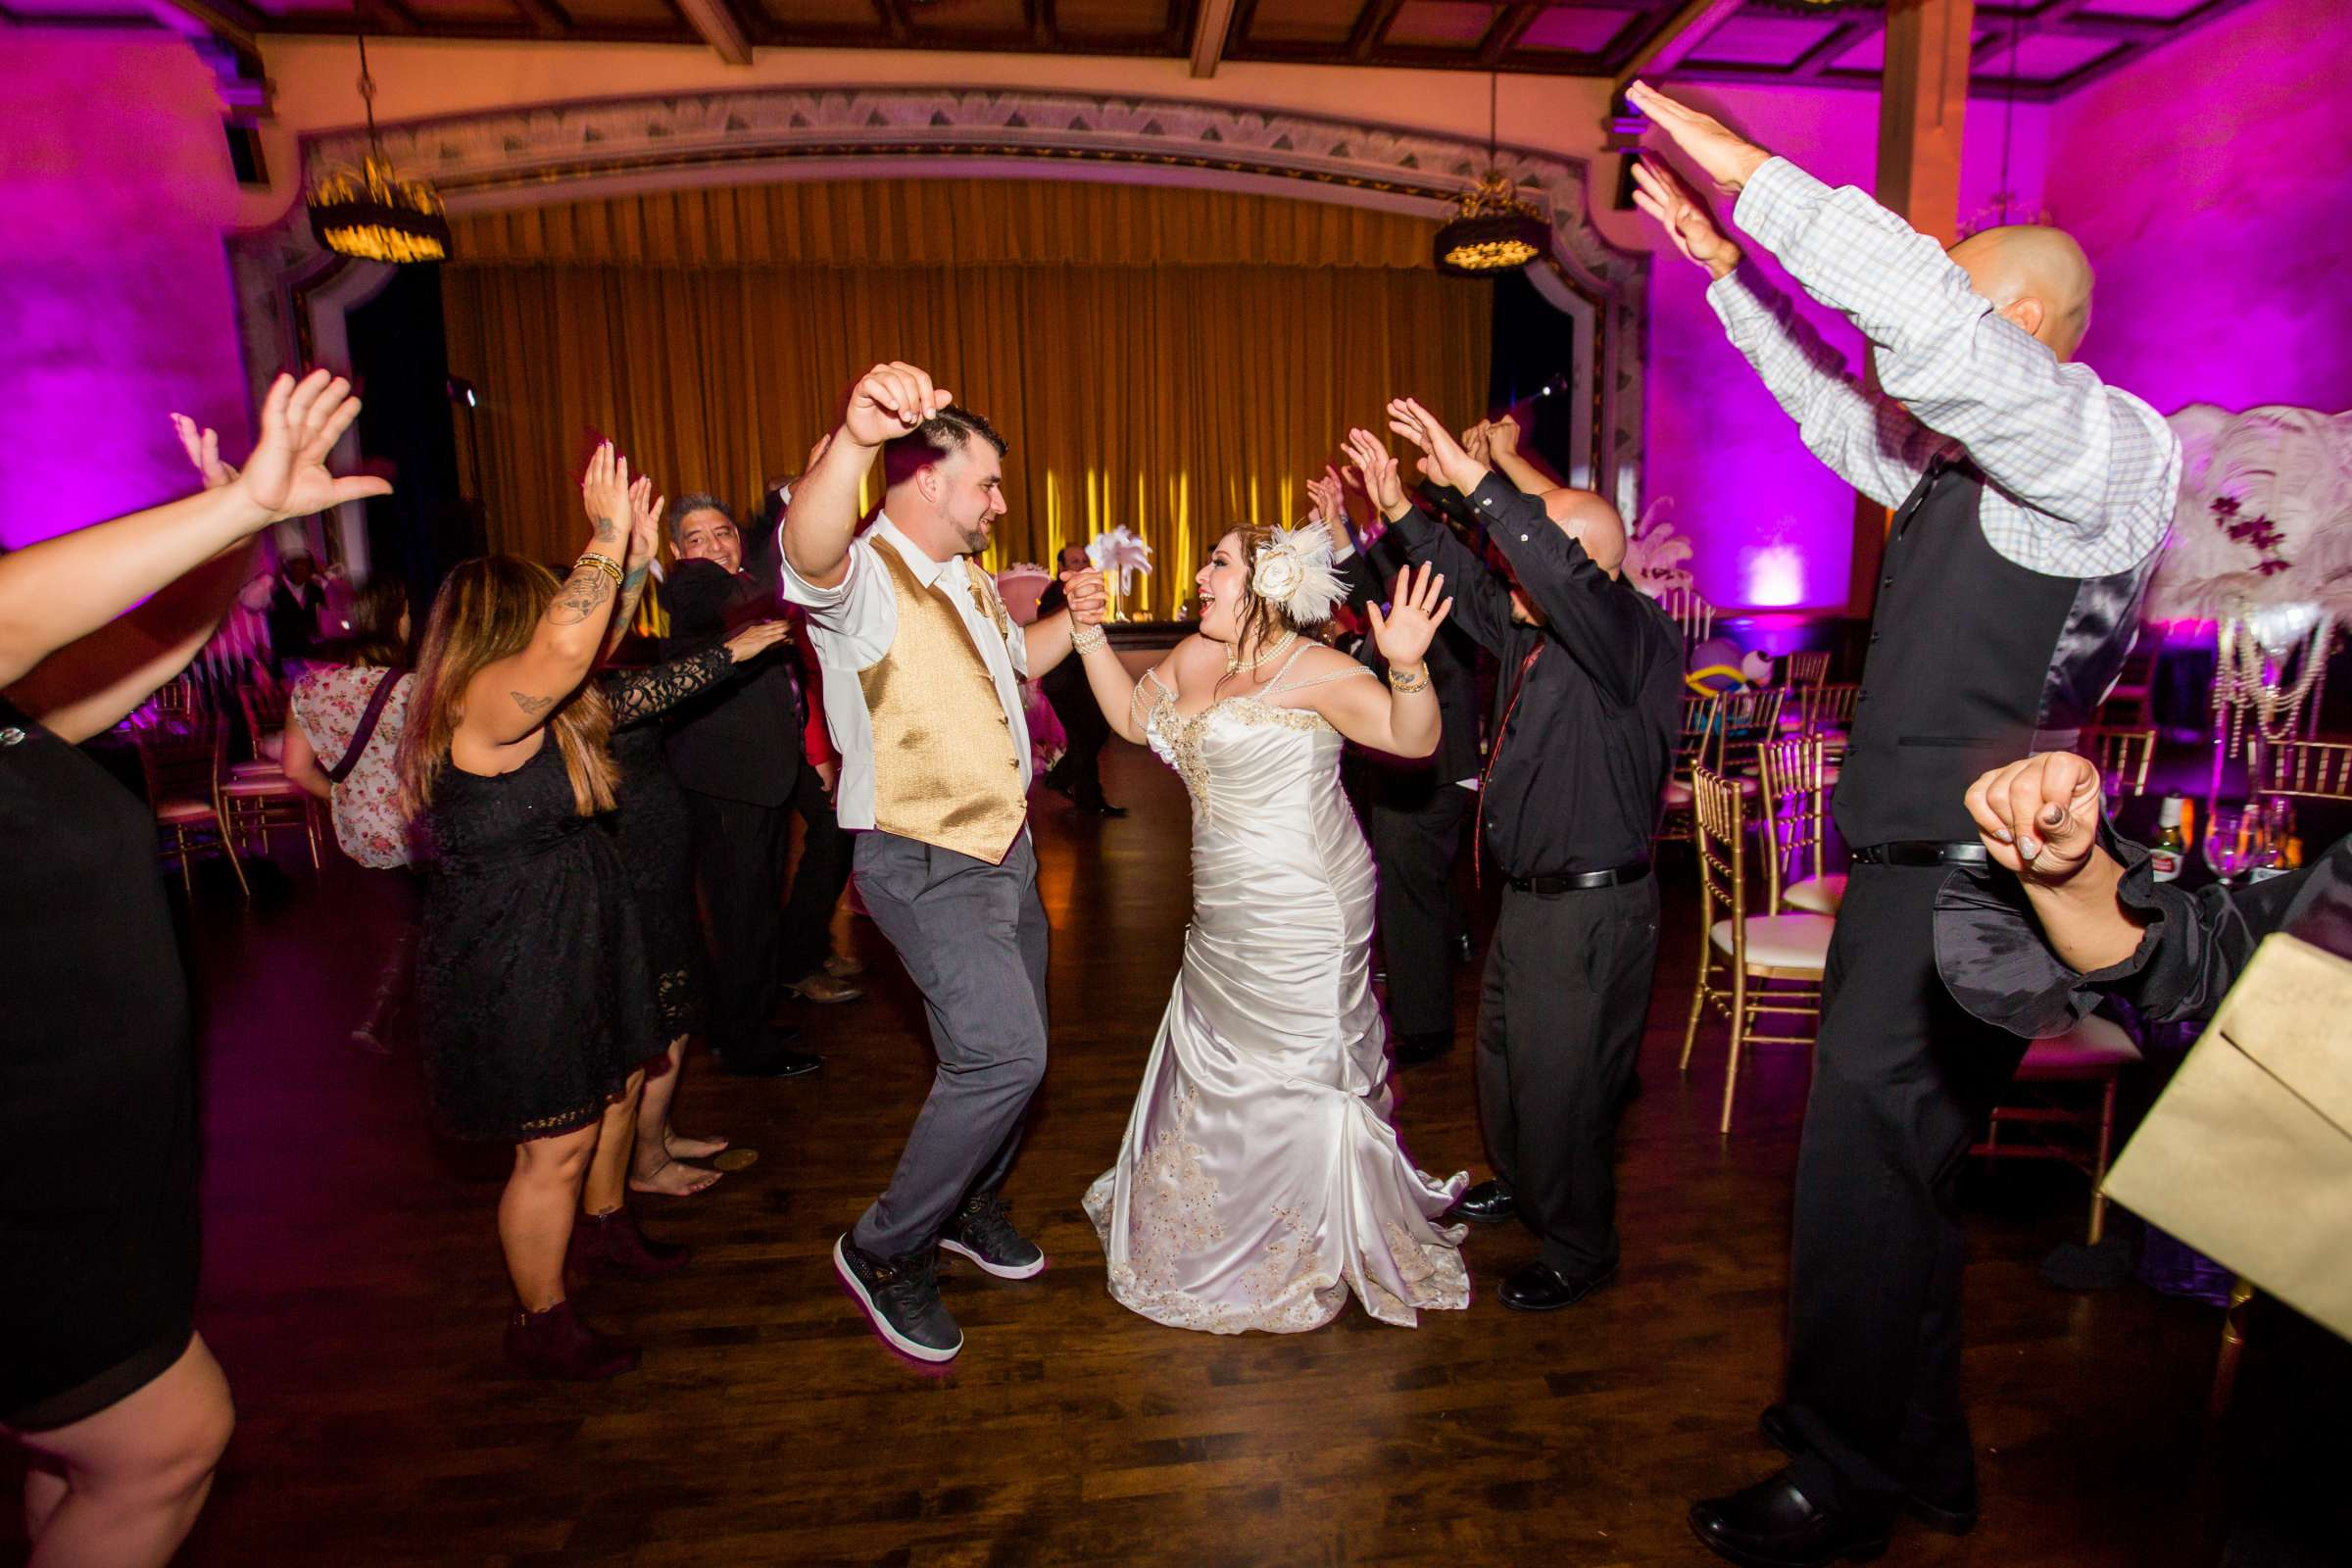 The Prado Wedding coordinated by Breezy Day Weddings, Aalis and Michael Wedding Photo #141 by True Photography